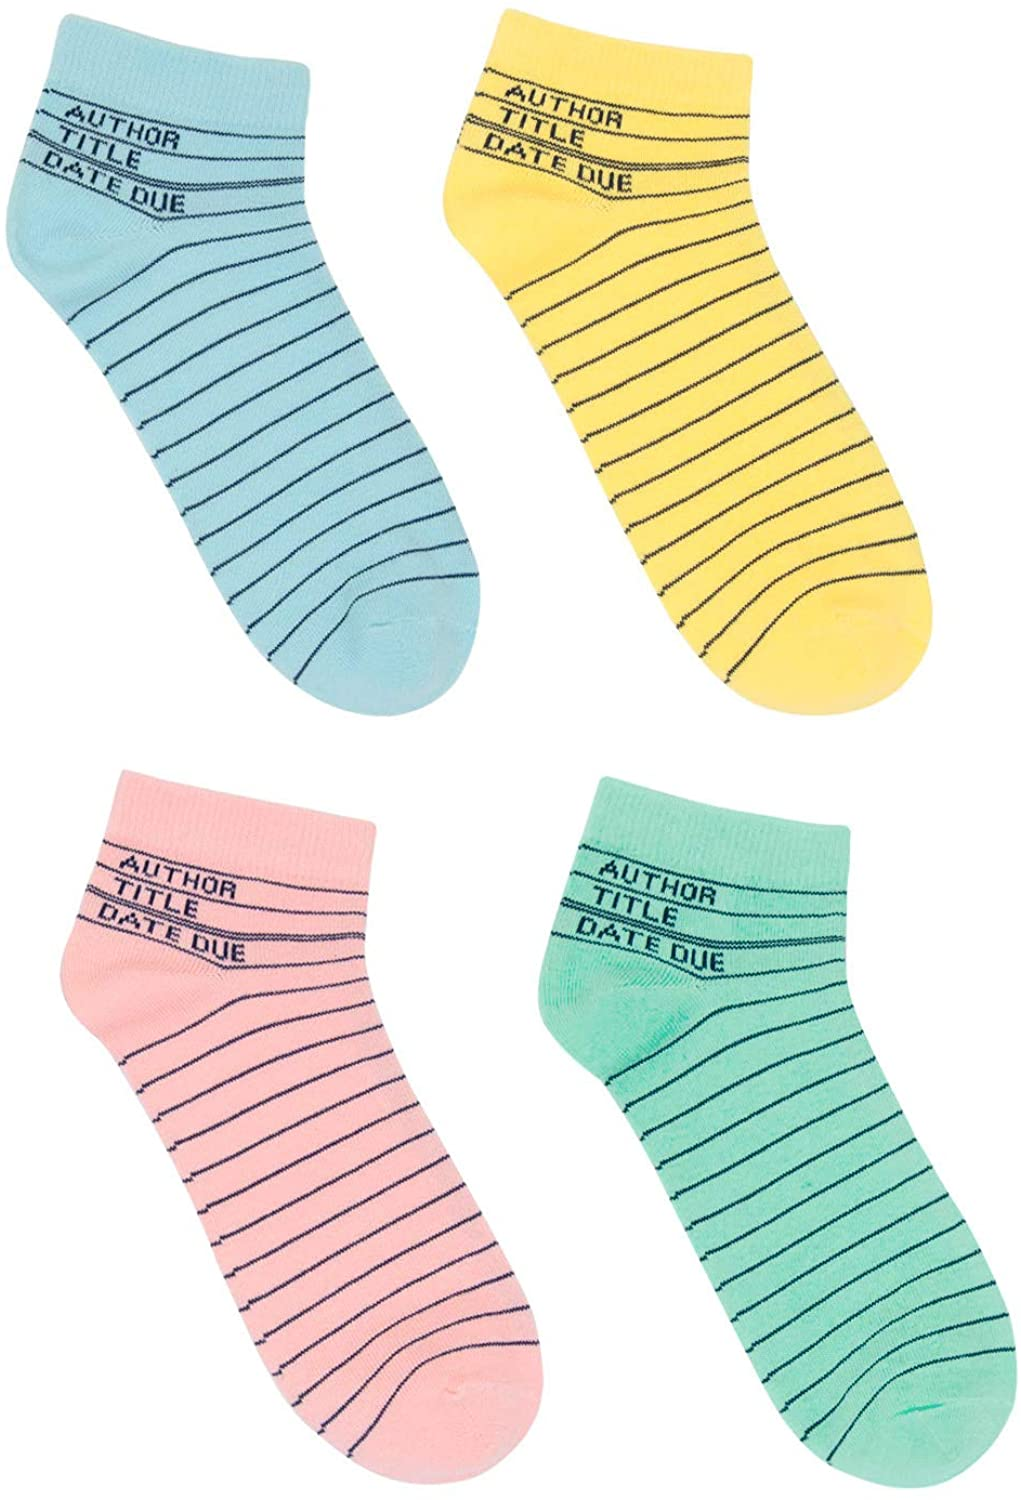 out of print pastel unisex library card print anklets, best gifts for book lovers